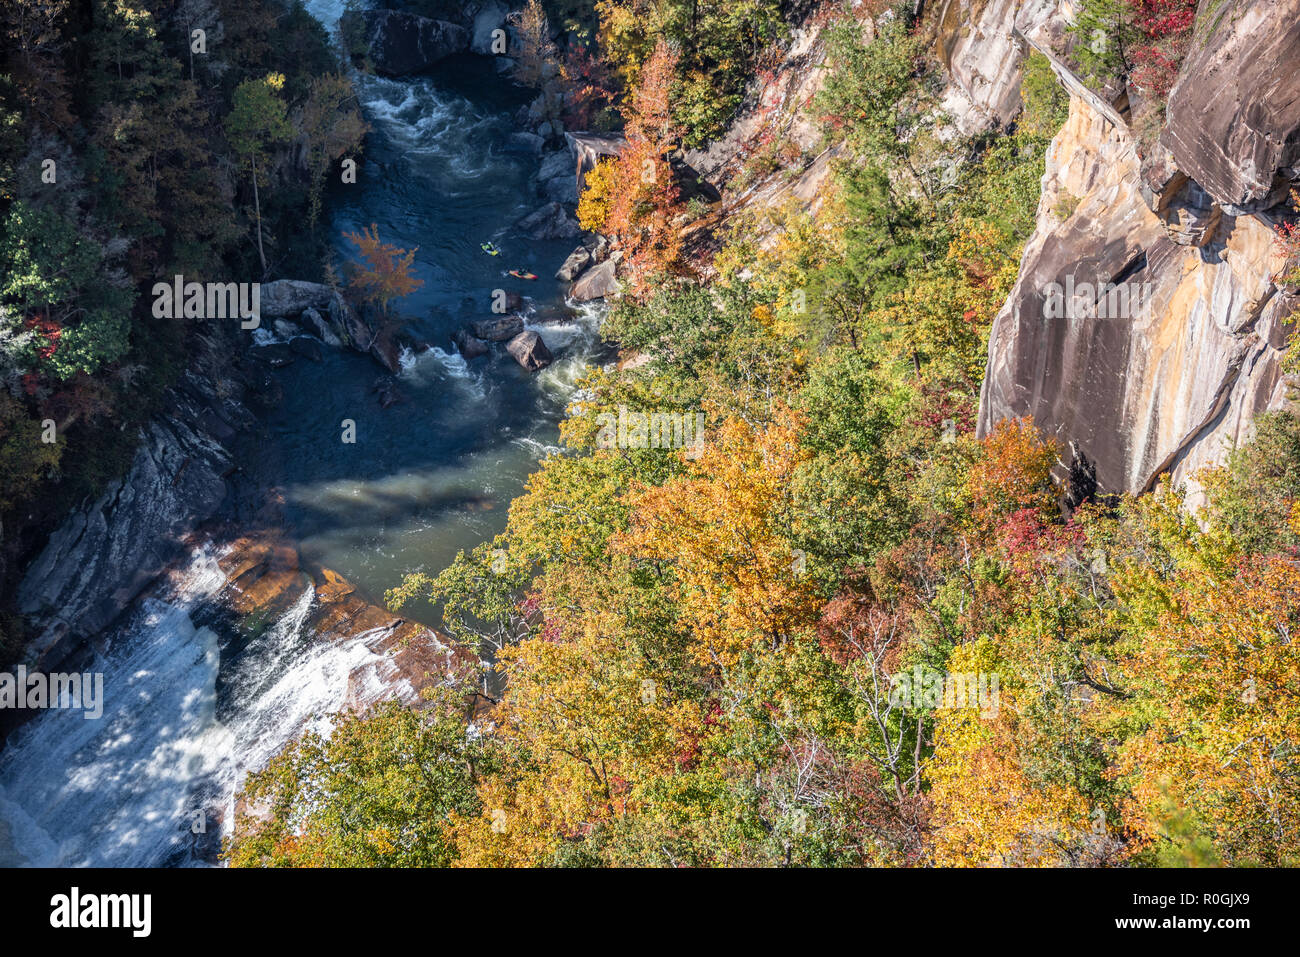 Whitewater kayakers in Tallulah Gorge approaching Oceana Falls, a Class V rapid, during the annual whitewater release from Tallulah Falls Dam. (USA) - Stock Image